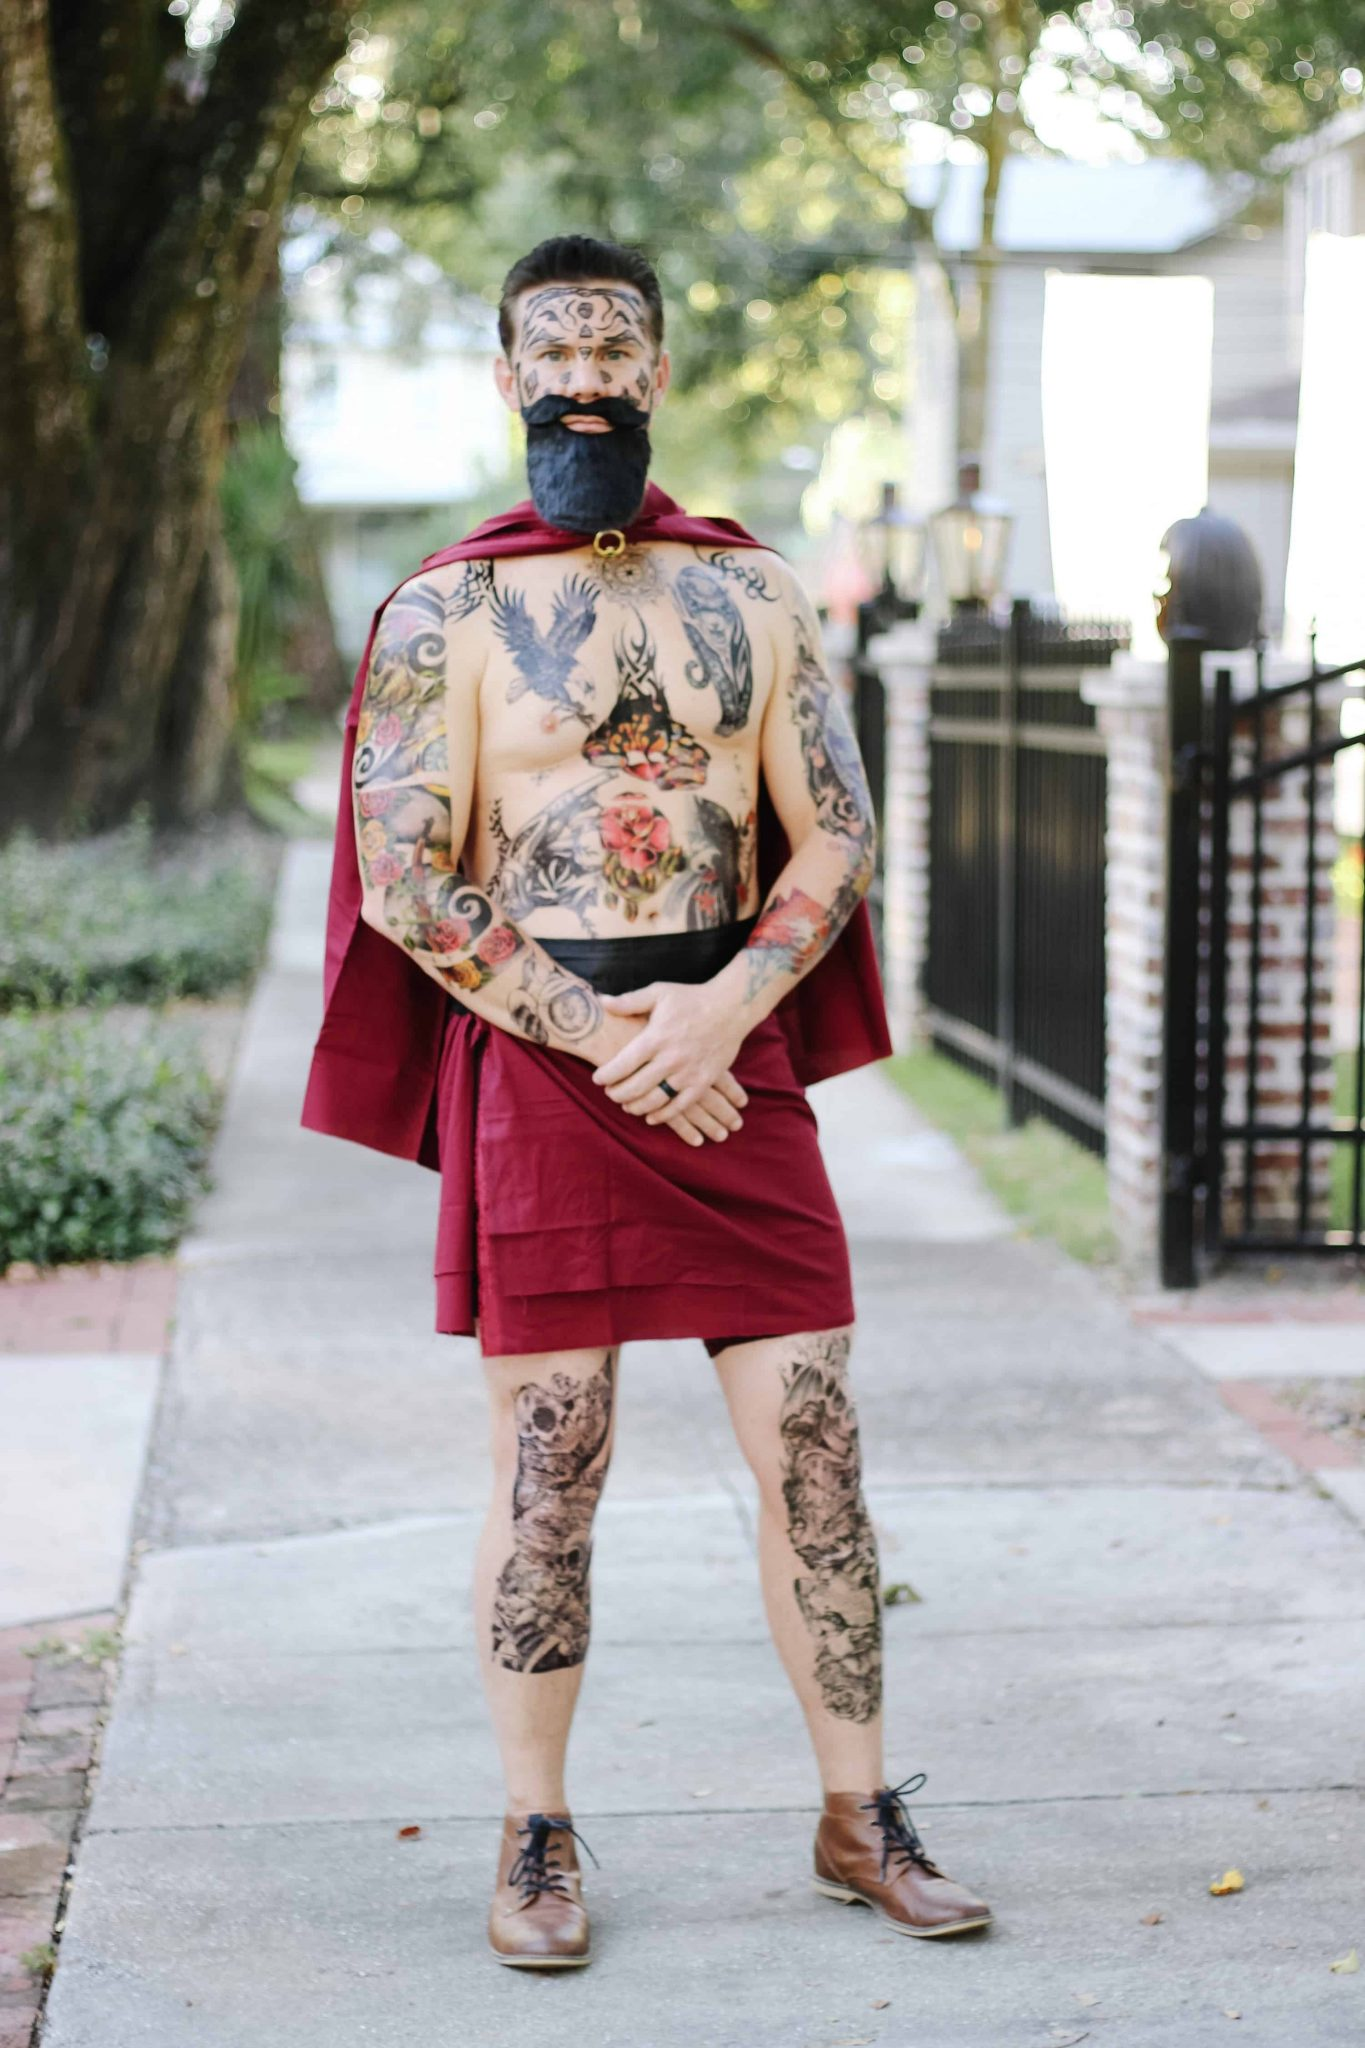 Greatest Showman Halloween Costumes | tattoo man